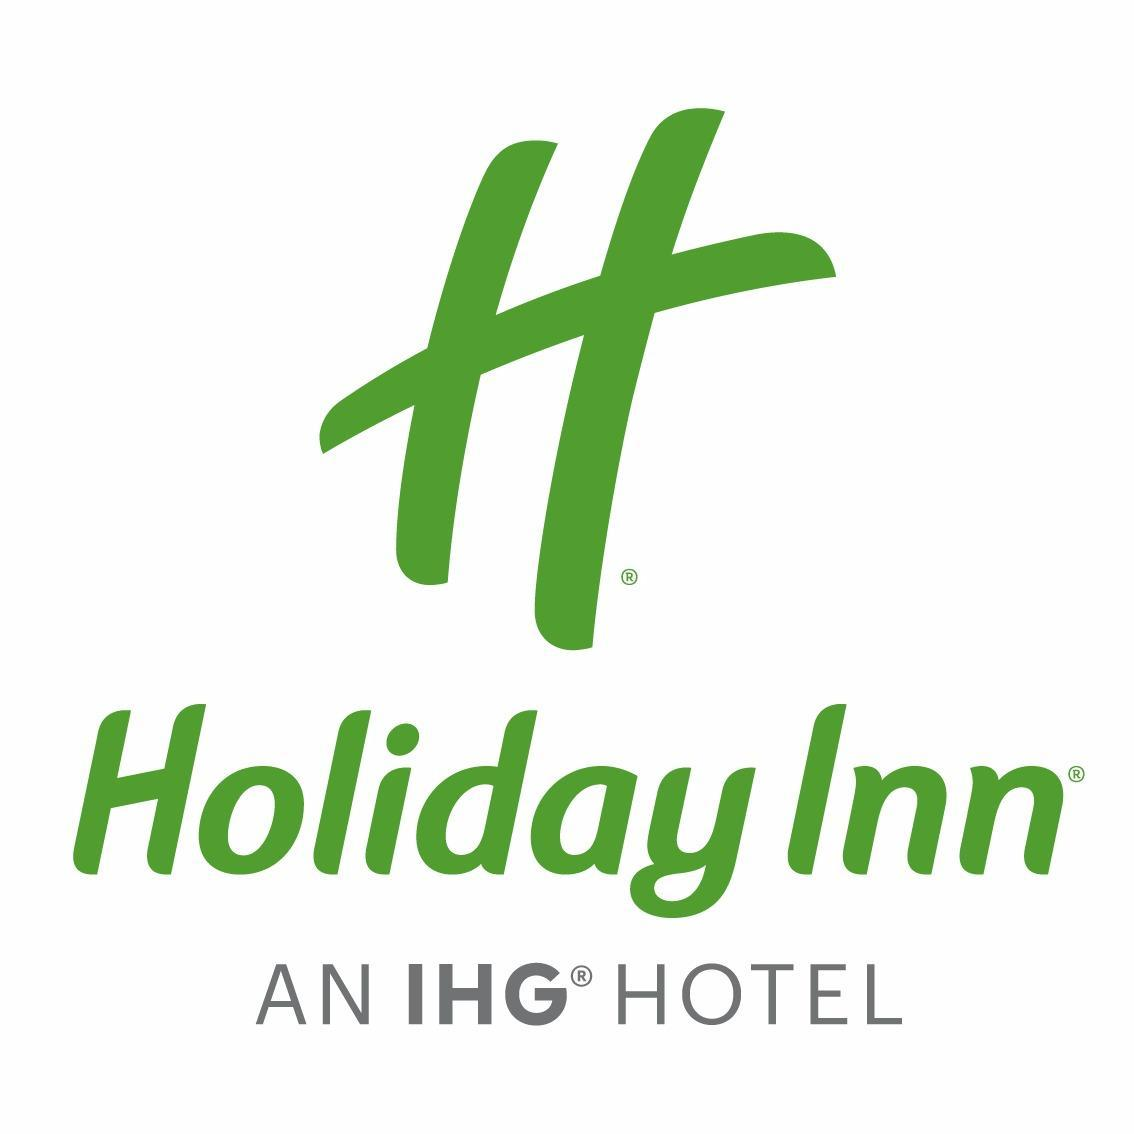 Hotel in MD Solomons 20688 Holiday Inn Solomons-Conf Center & Marina 155 Holiday Drive  (410)326-6311